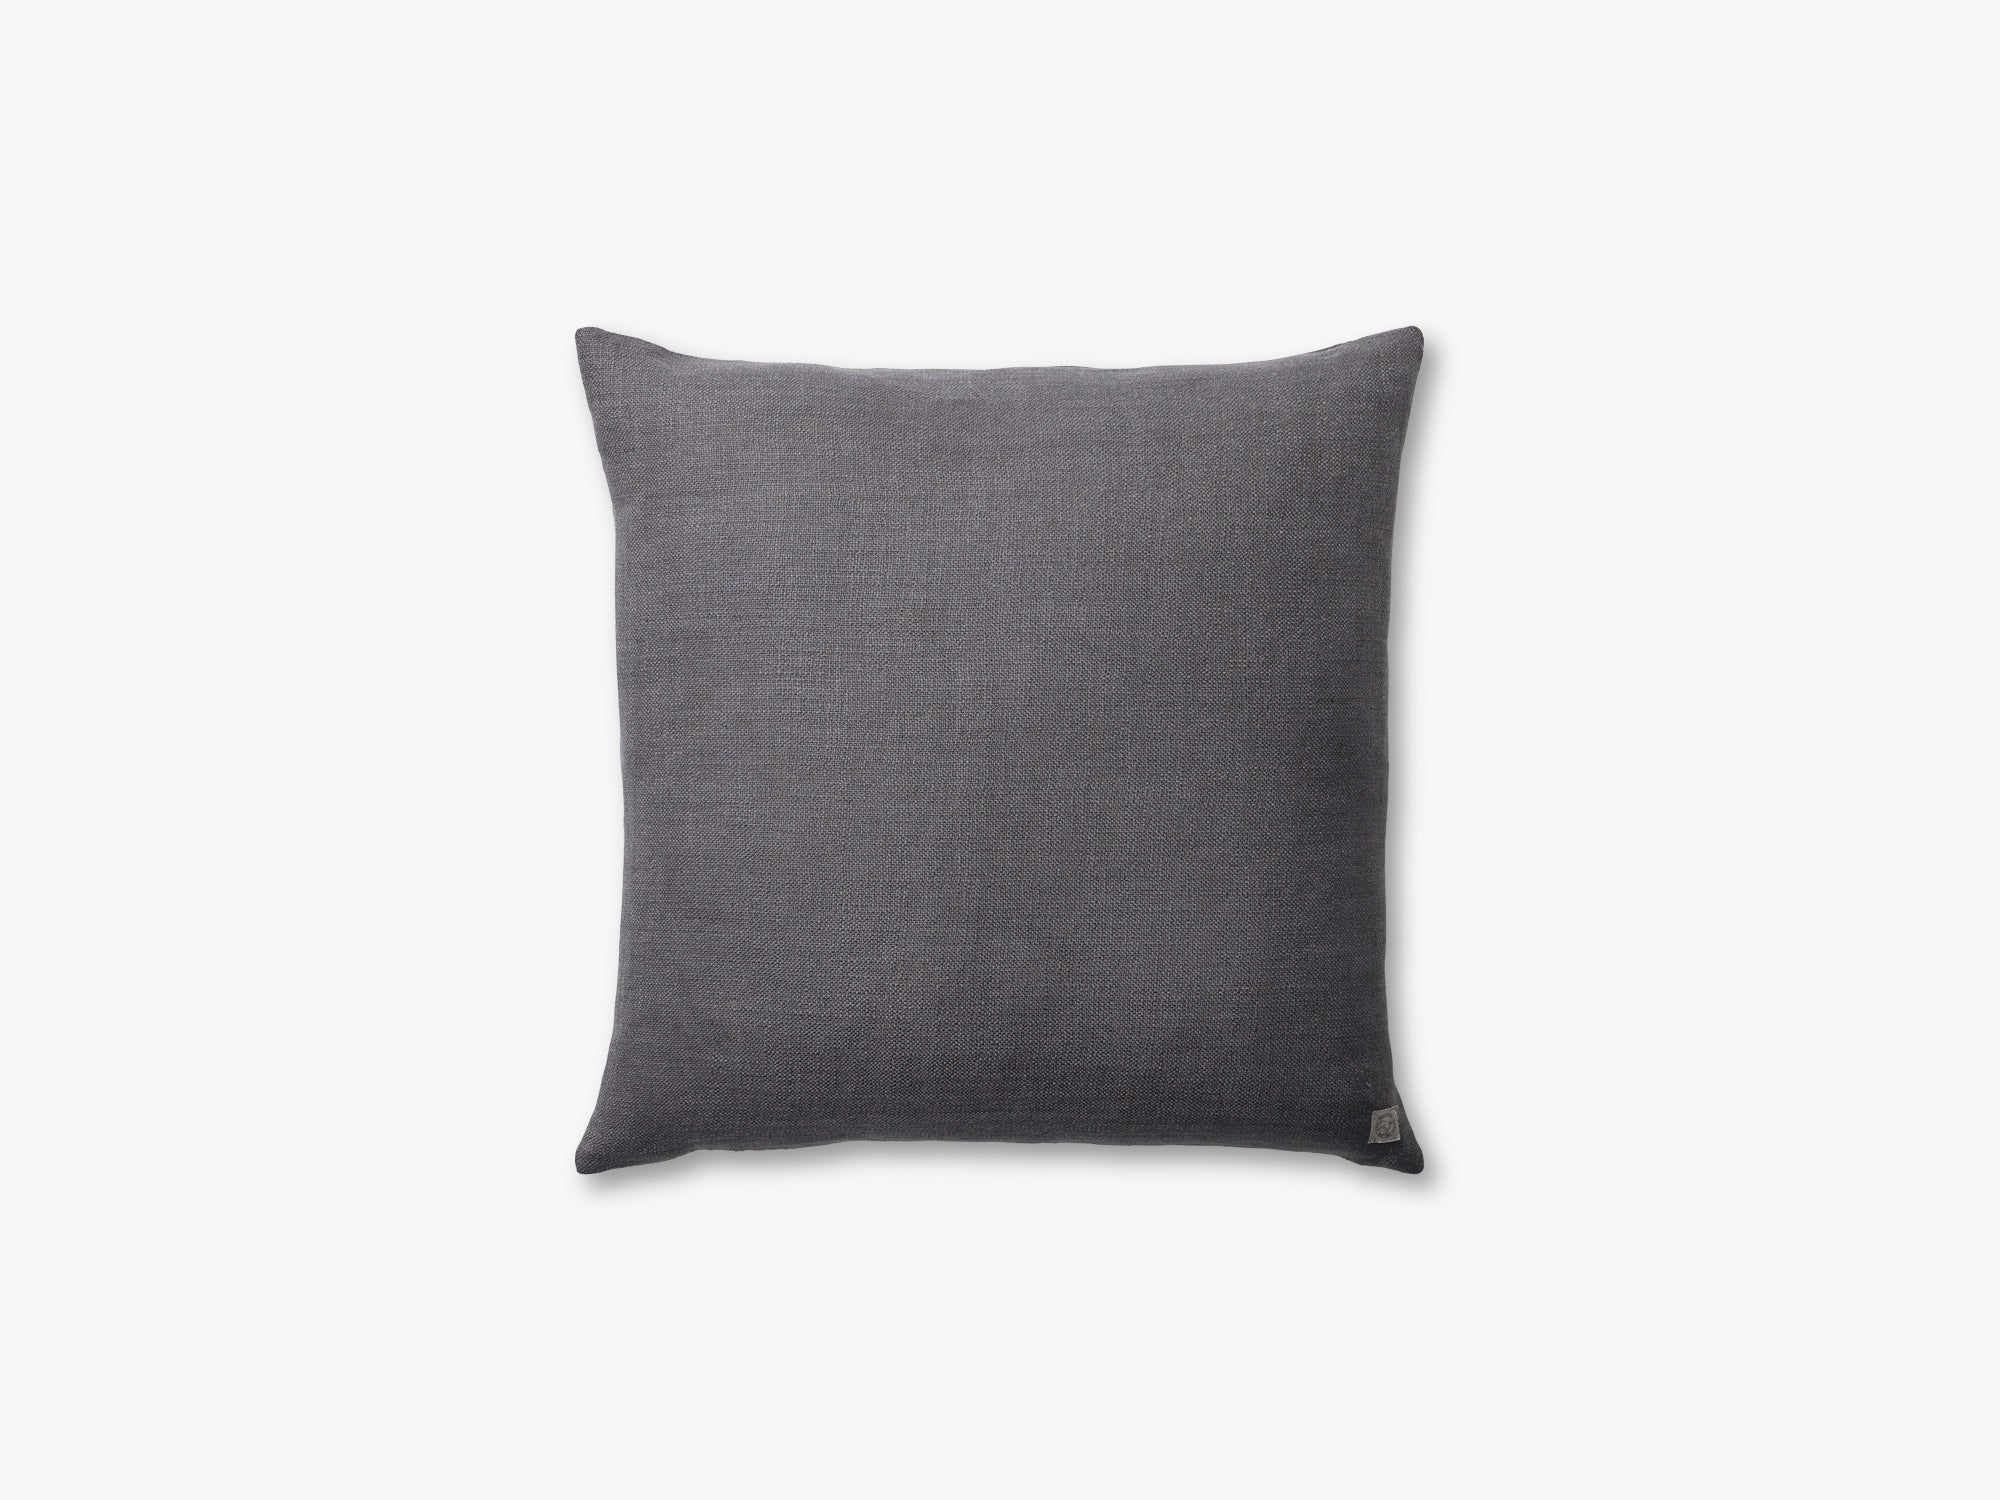 Collect Cushion SC29 - 65x65, Slate/Heavy Linen fra &tradition